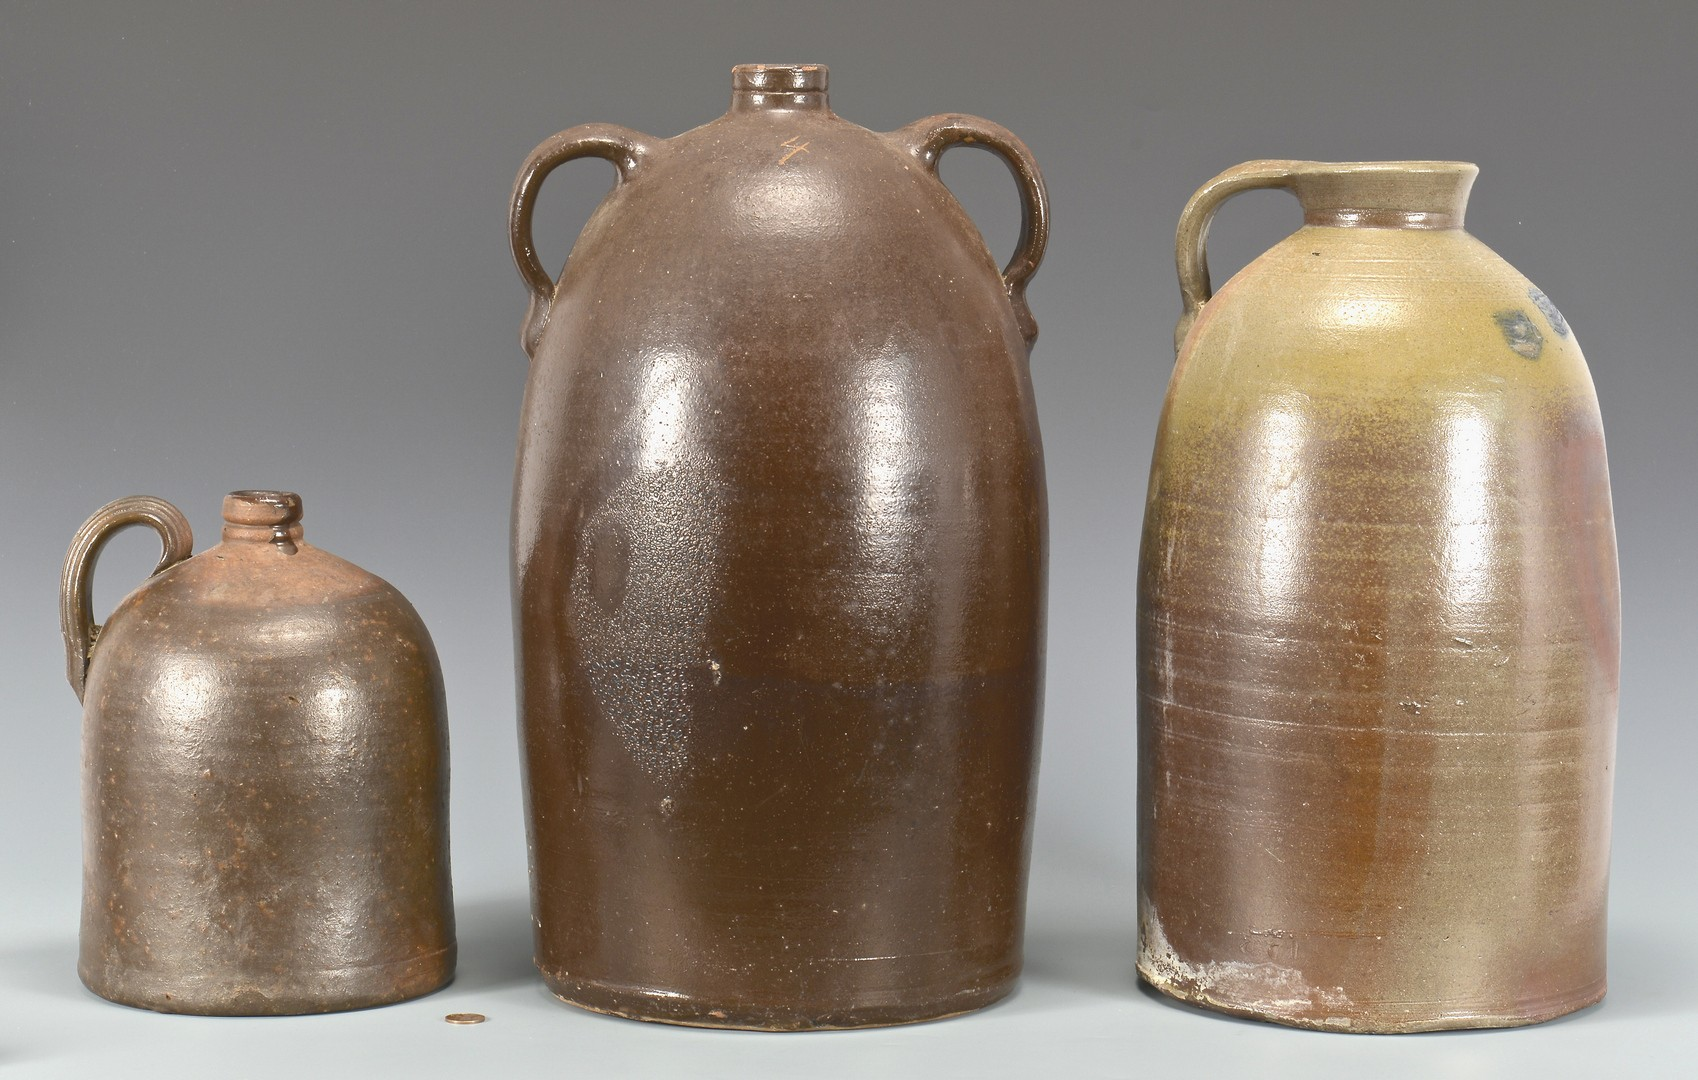 Lot 654: Grouping of 3 East TN pottery jugs